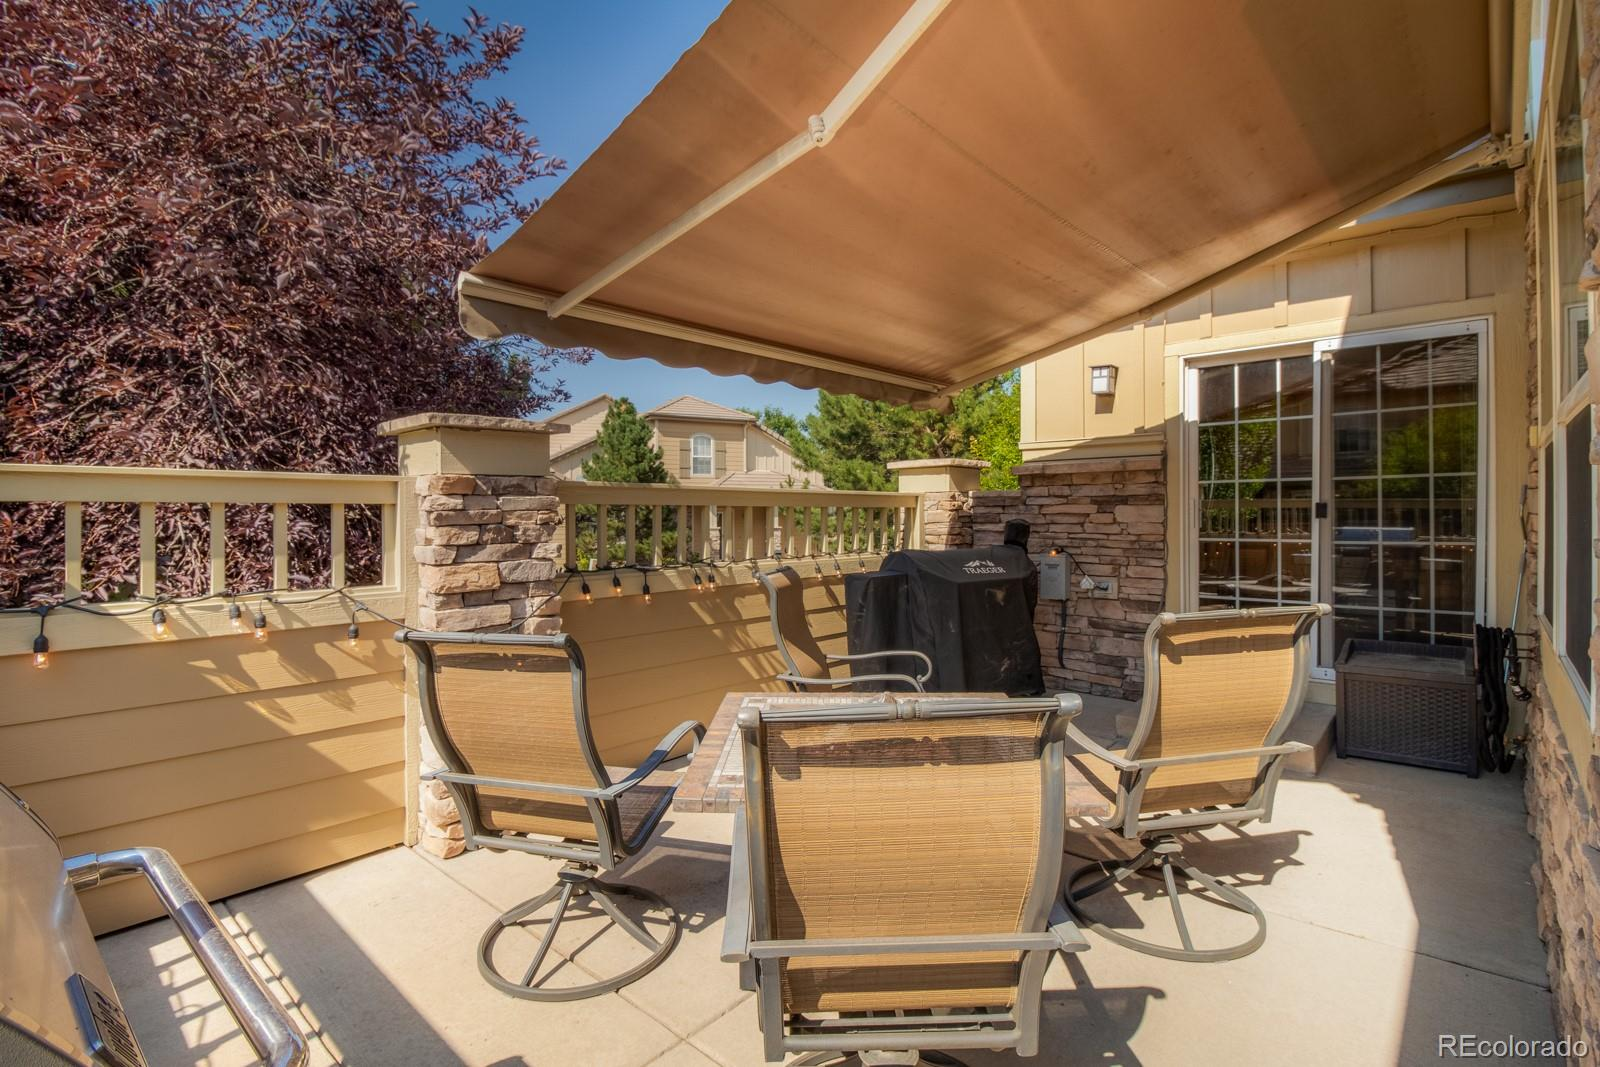 MLS# 7685605 - 5 - 8945 Tappy Toorie Circle, Highlands Ranch, CO 80129